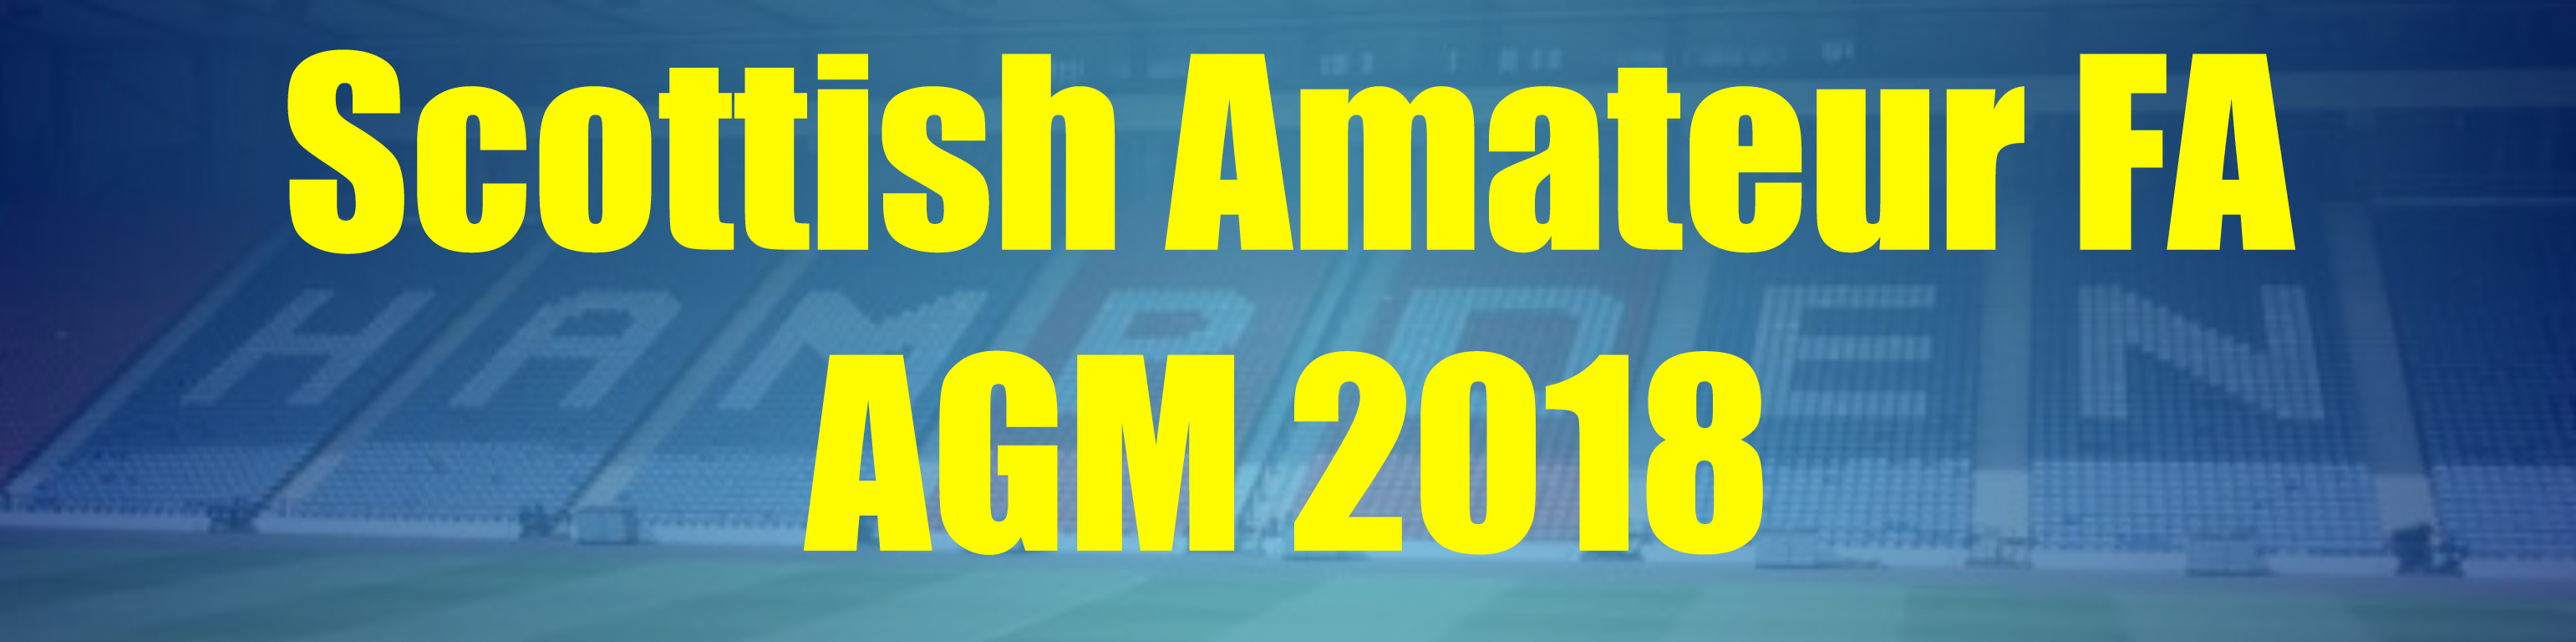 Scottish Amateur FA AGM